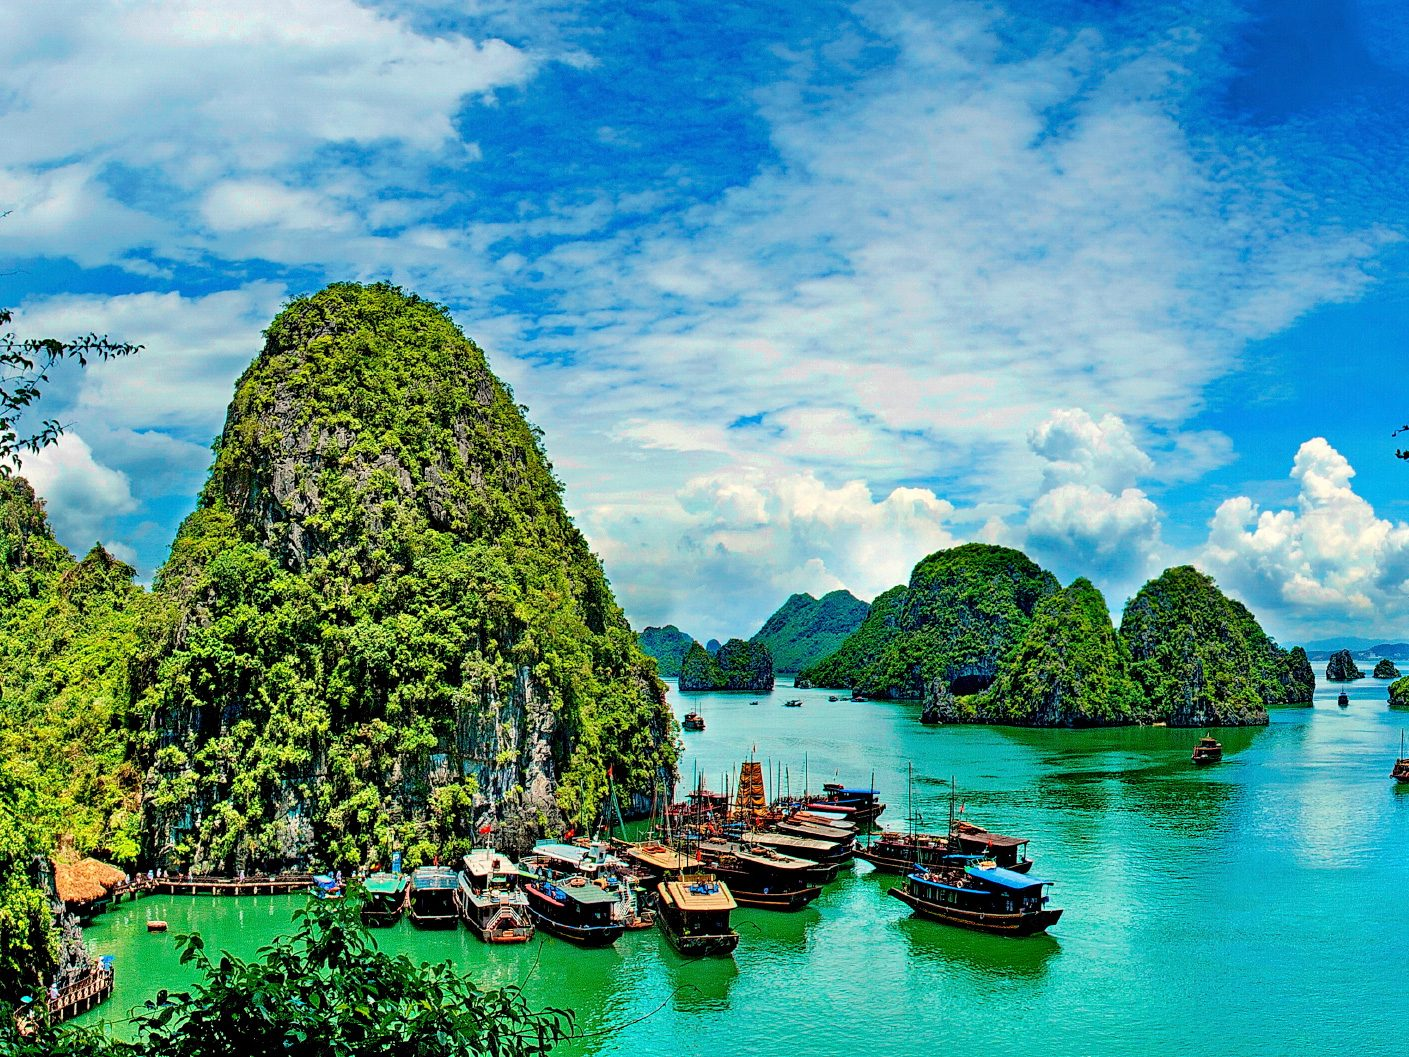 Visit: Hạ Long Bay, Vietnam